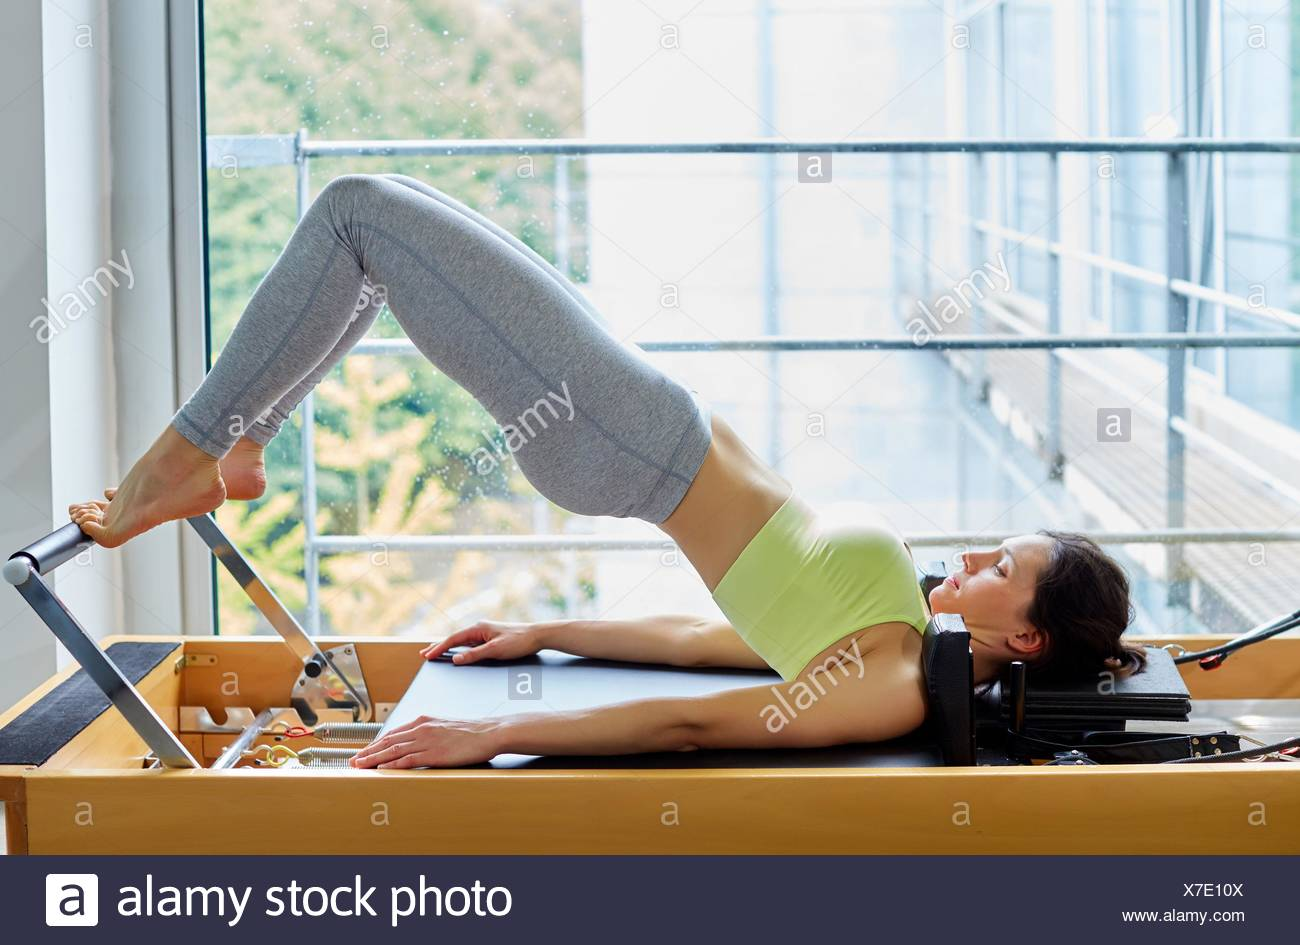 Pilates reformer, Woman training in gym - Stock Image